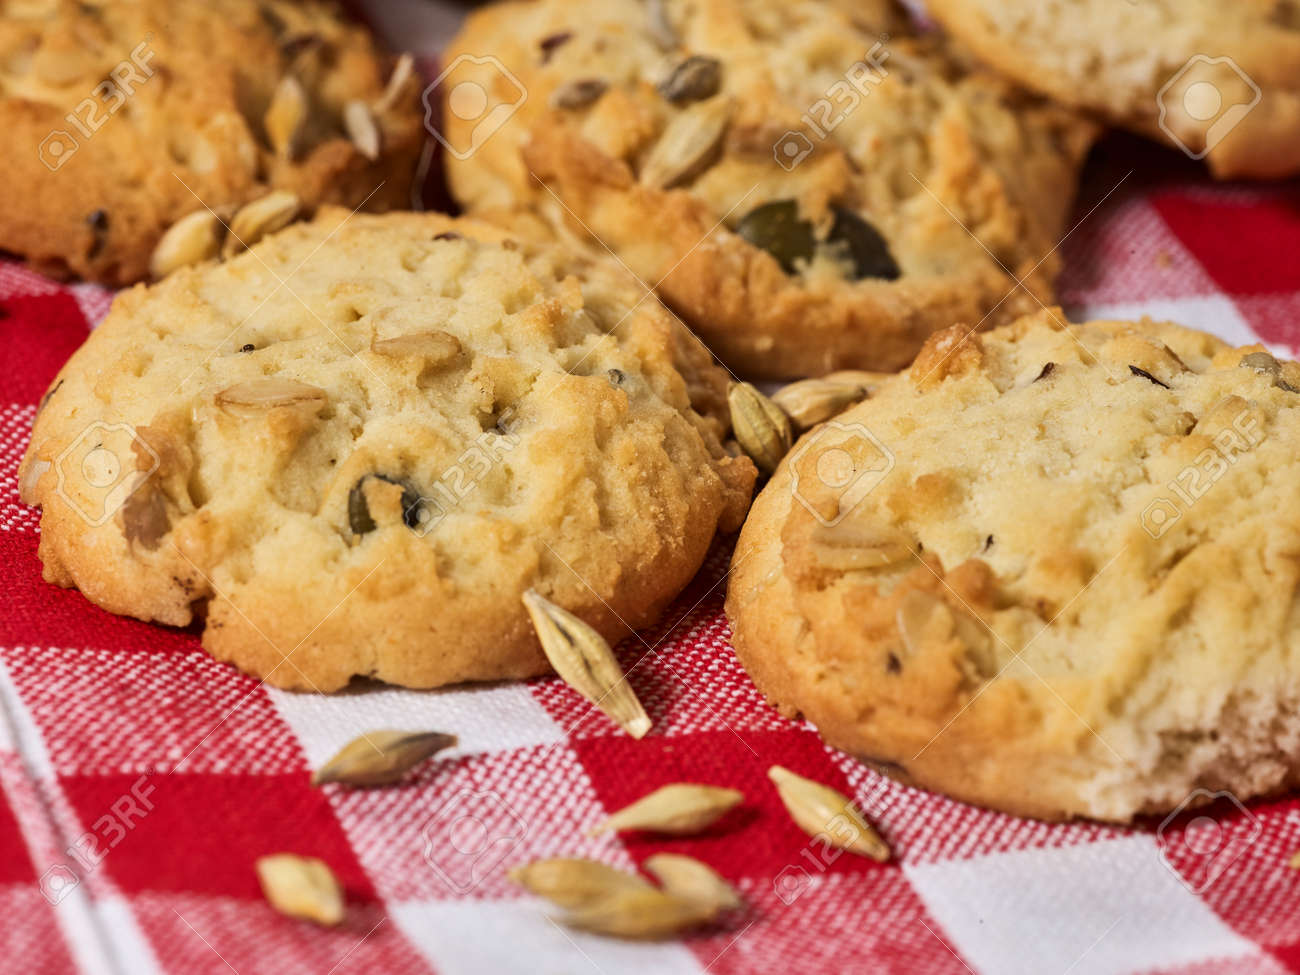 Oatmeal cookies with husk whole oats on red kitchen gingham checkered cotton fabric on table in farm-style. - 156541267